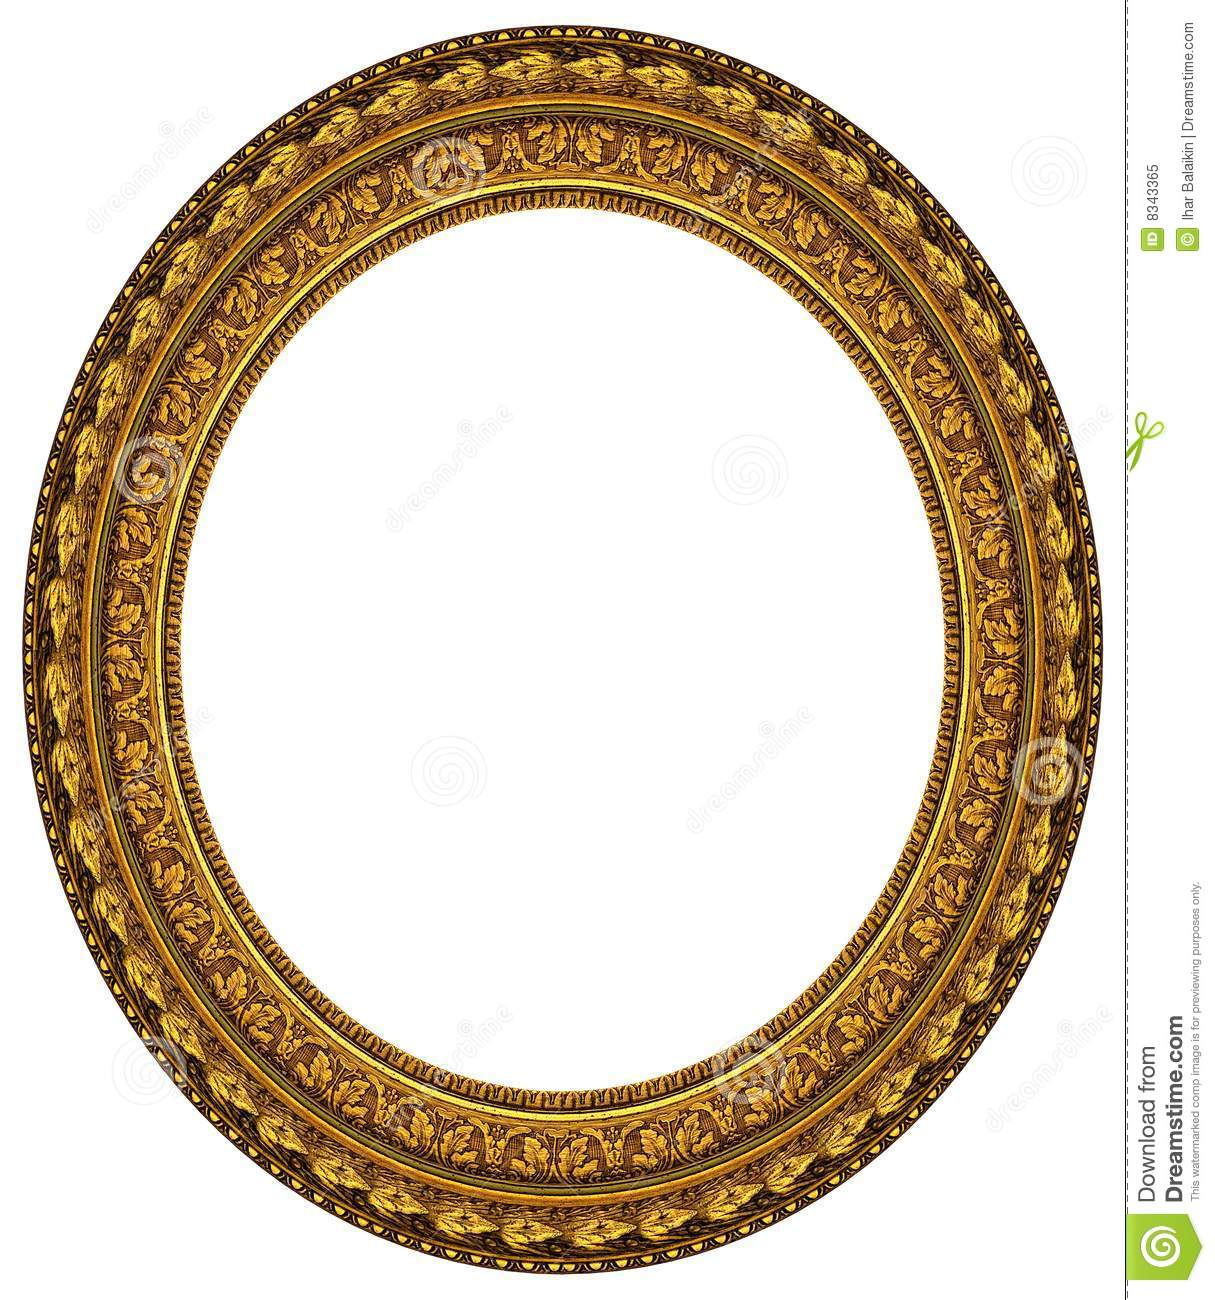 thumbs.dreamstime.com/z/oval-gold-picture-frame-83...